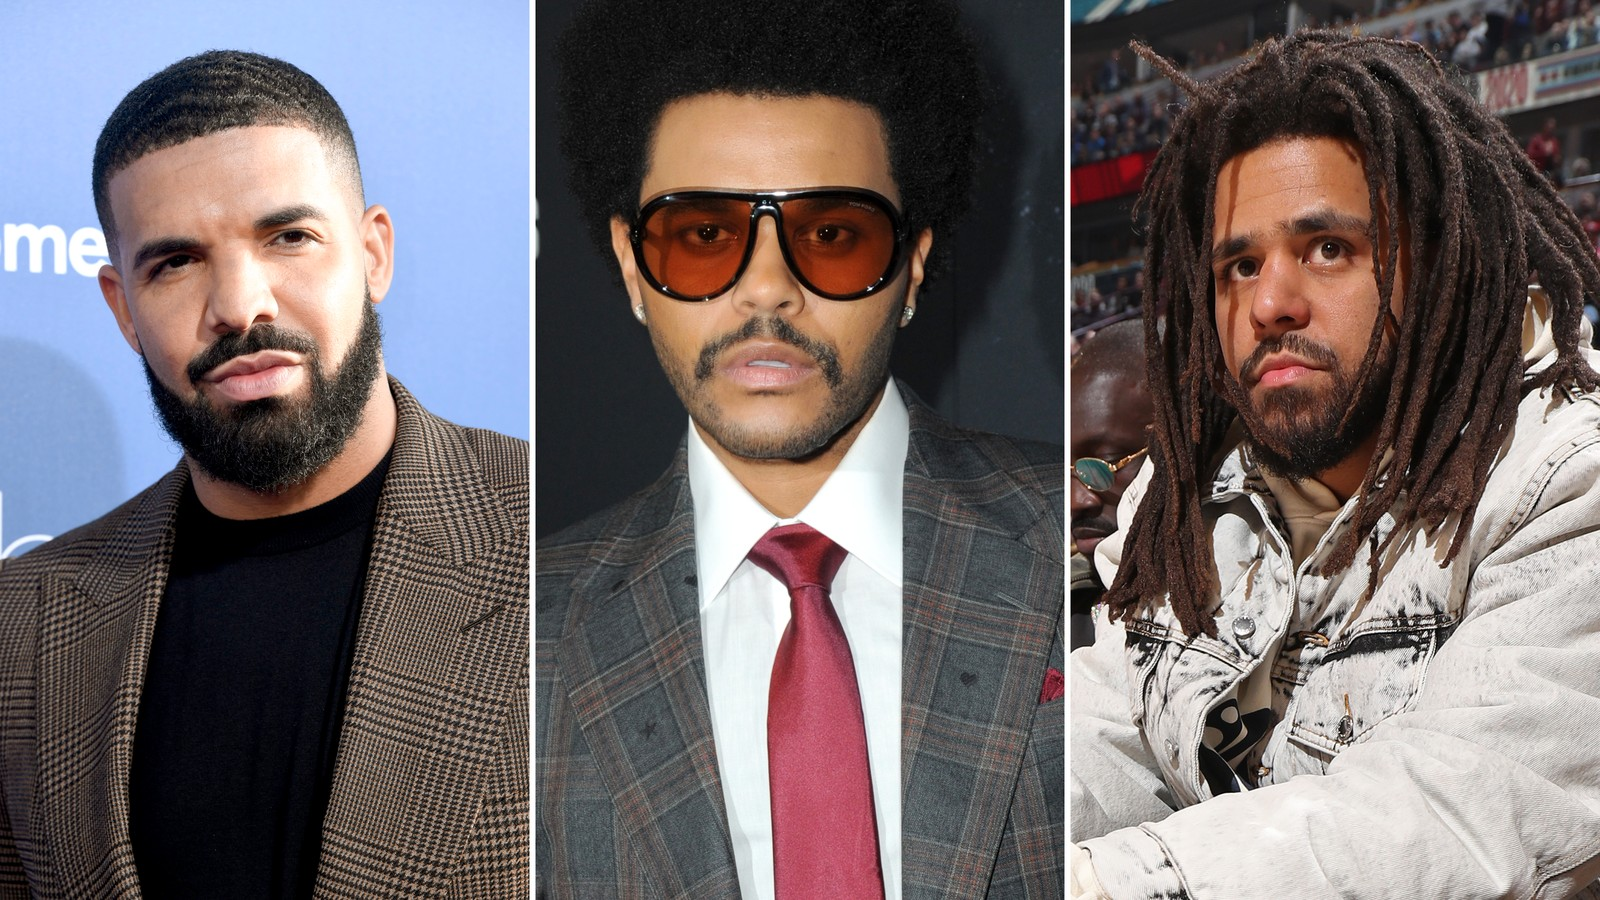 Drake, The Weeknd and J. Cole called an 11-year-old boy dying of cancer